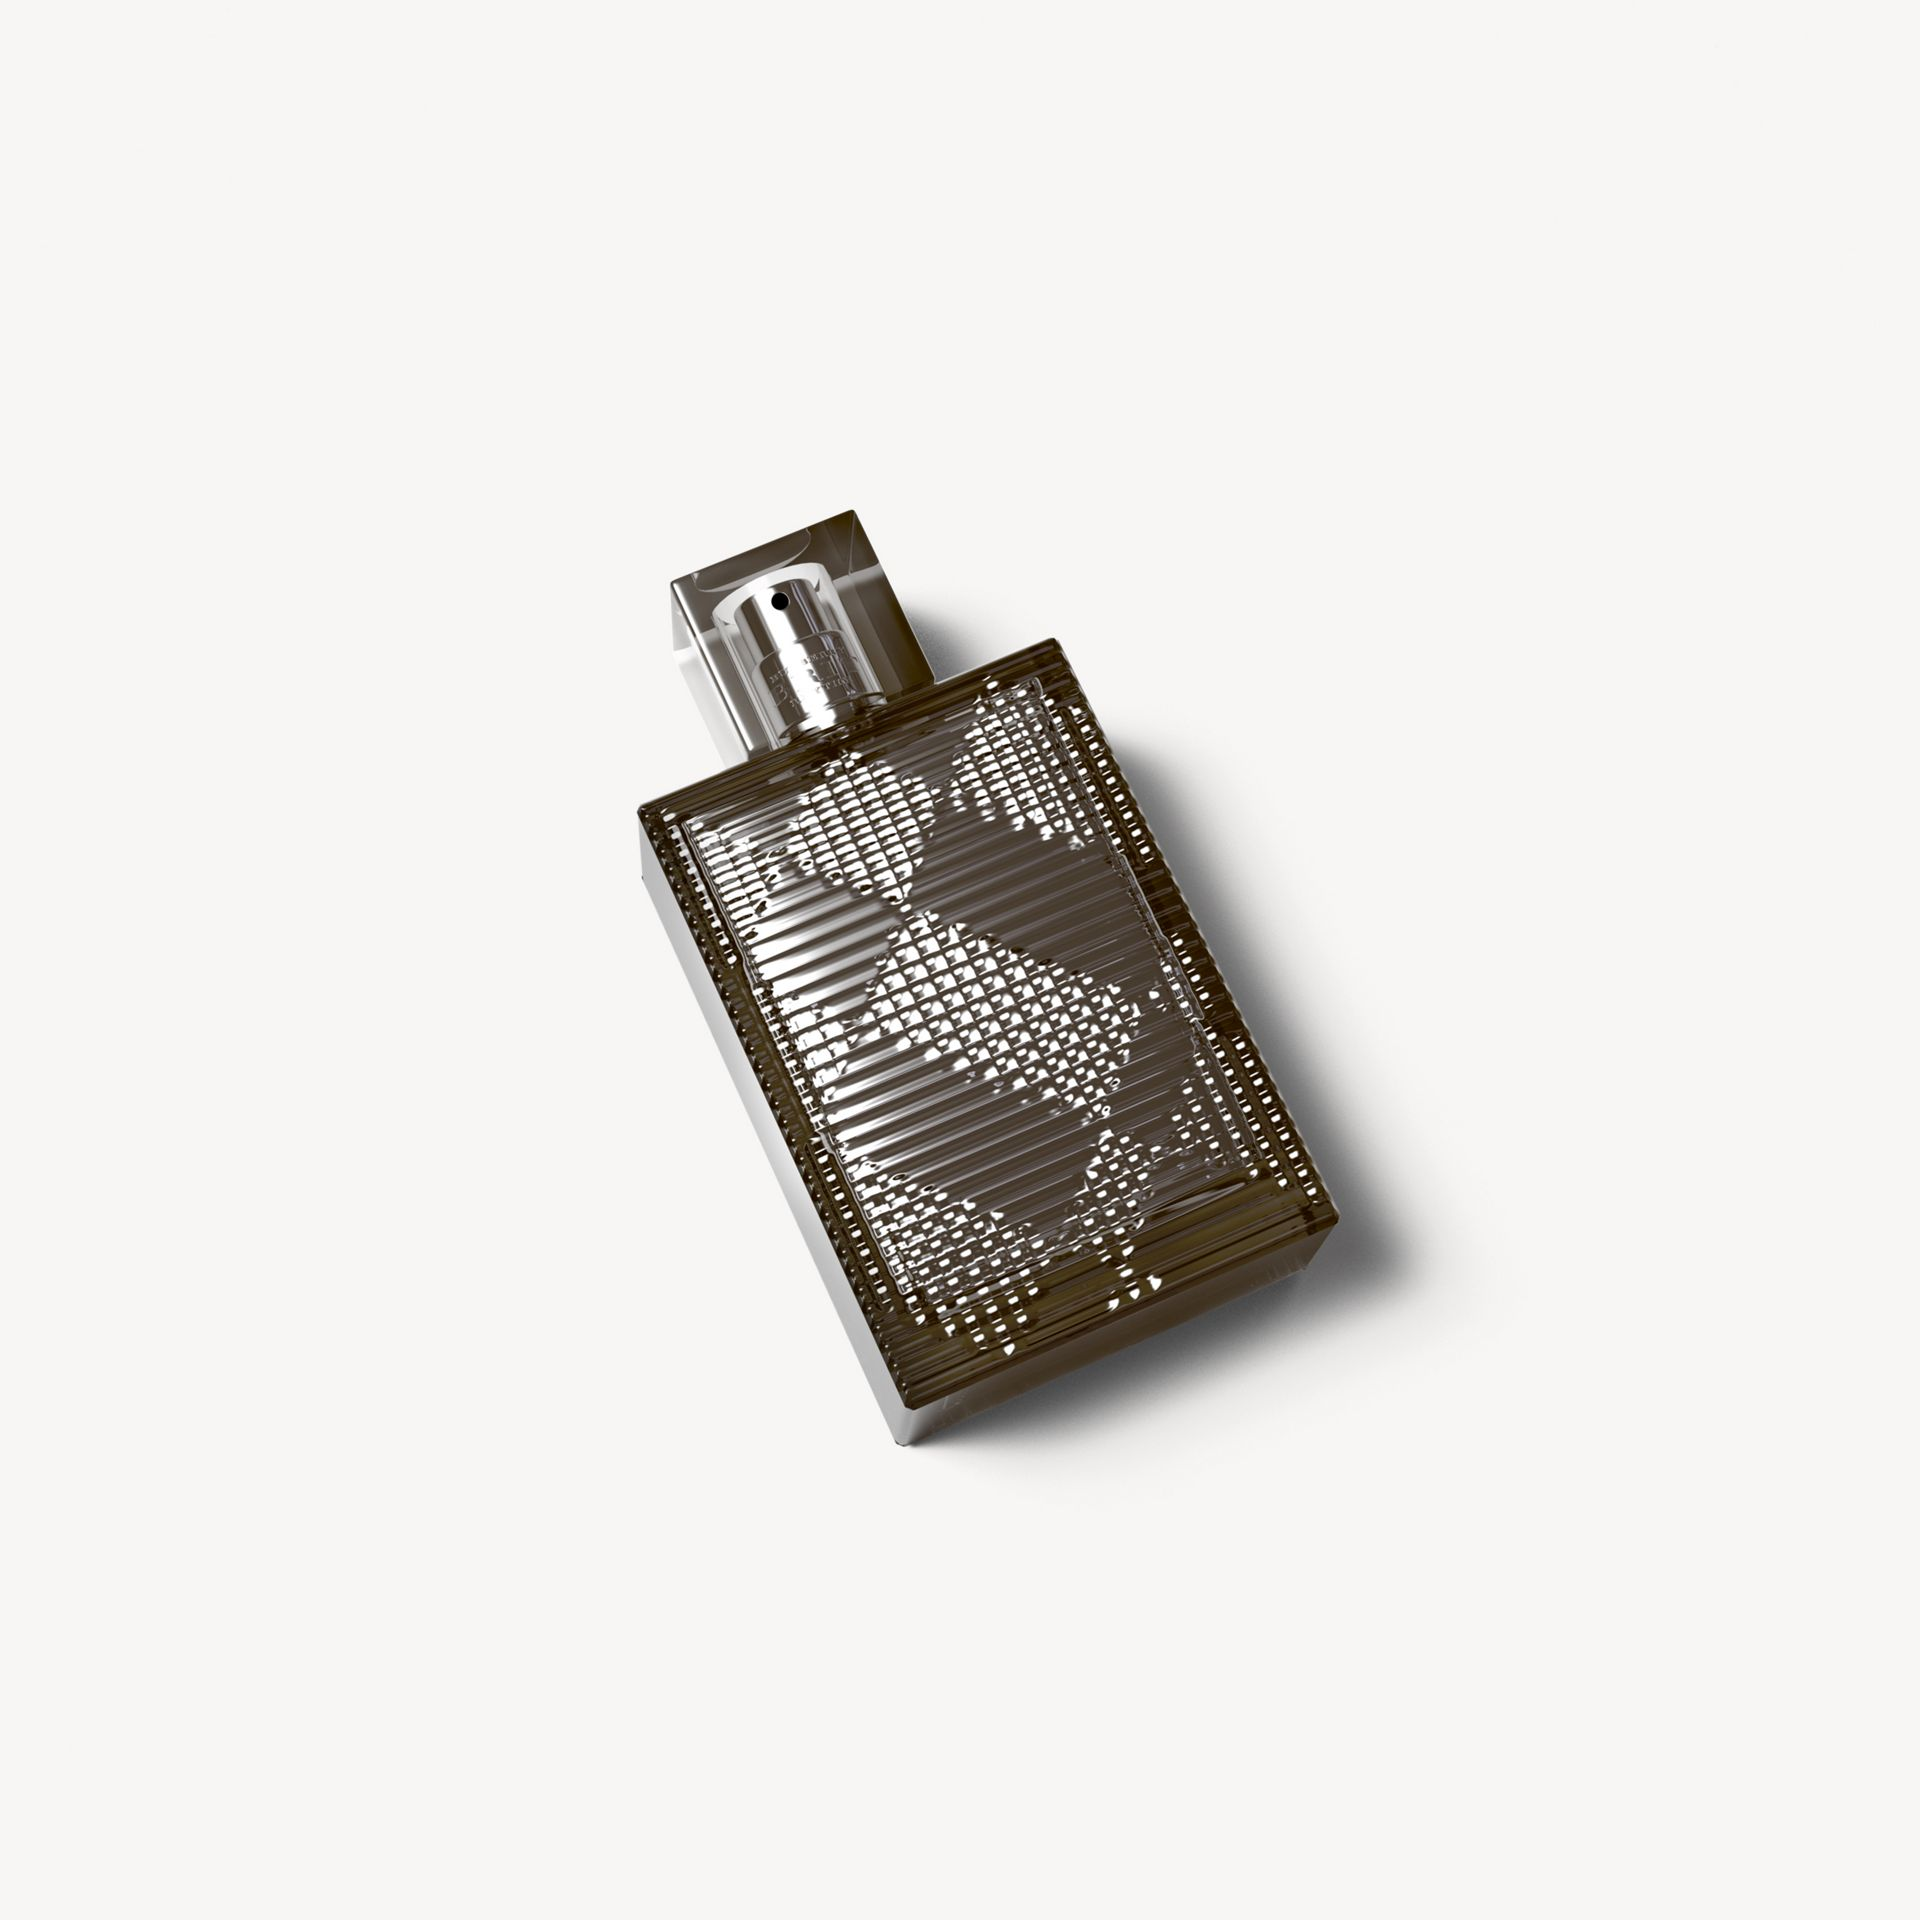 Burberry Brit Rhythm Intense Eau de Toilette 50ml - gallery image 1